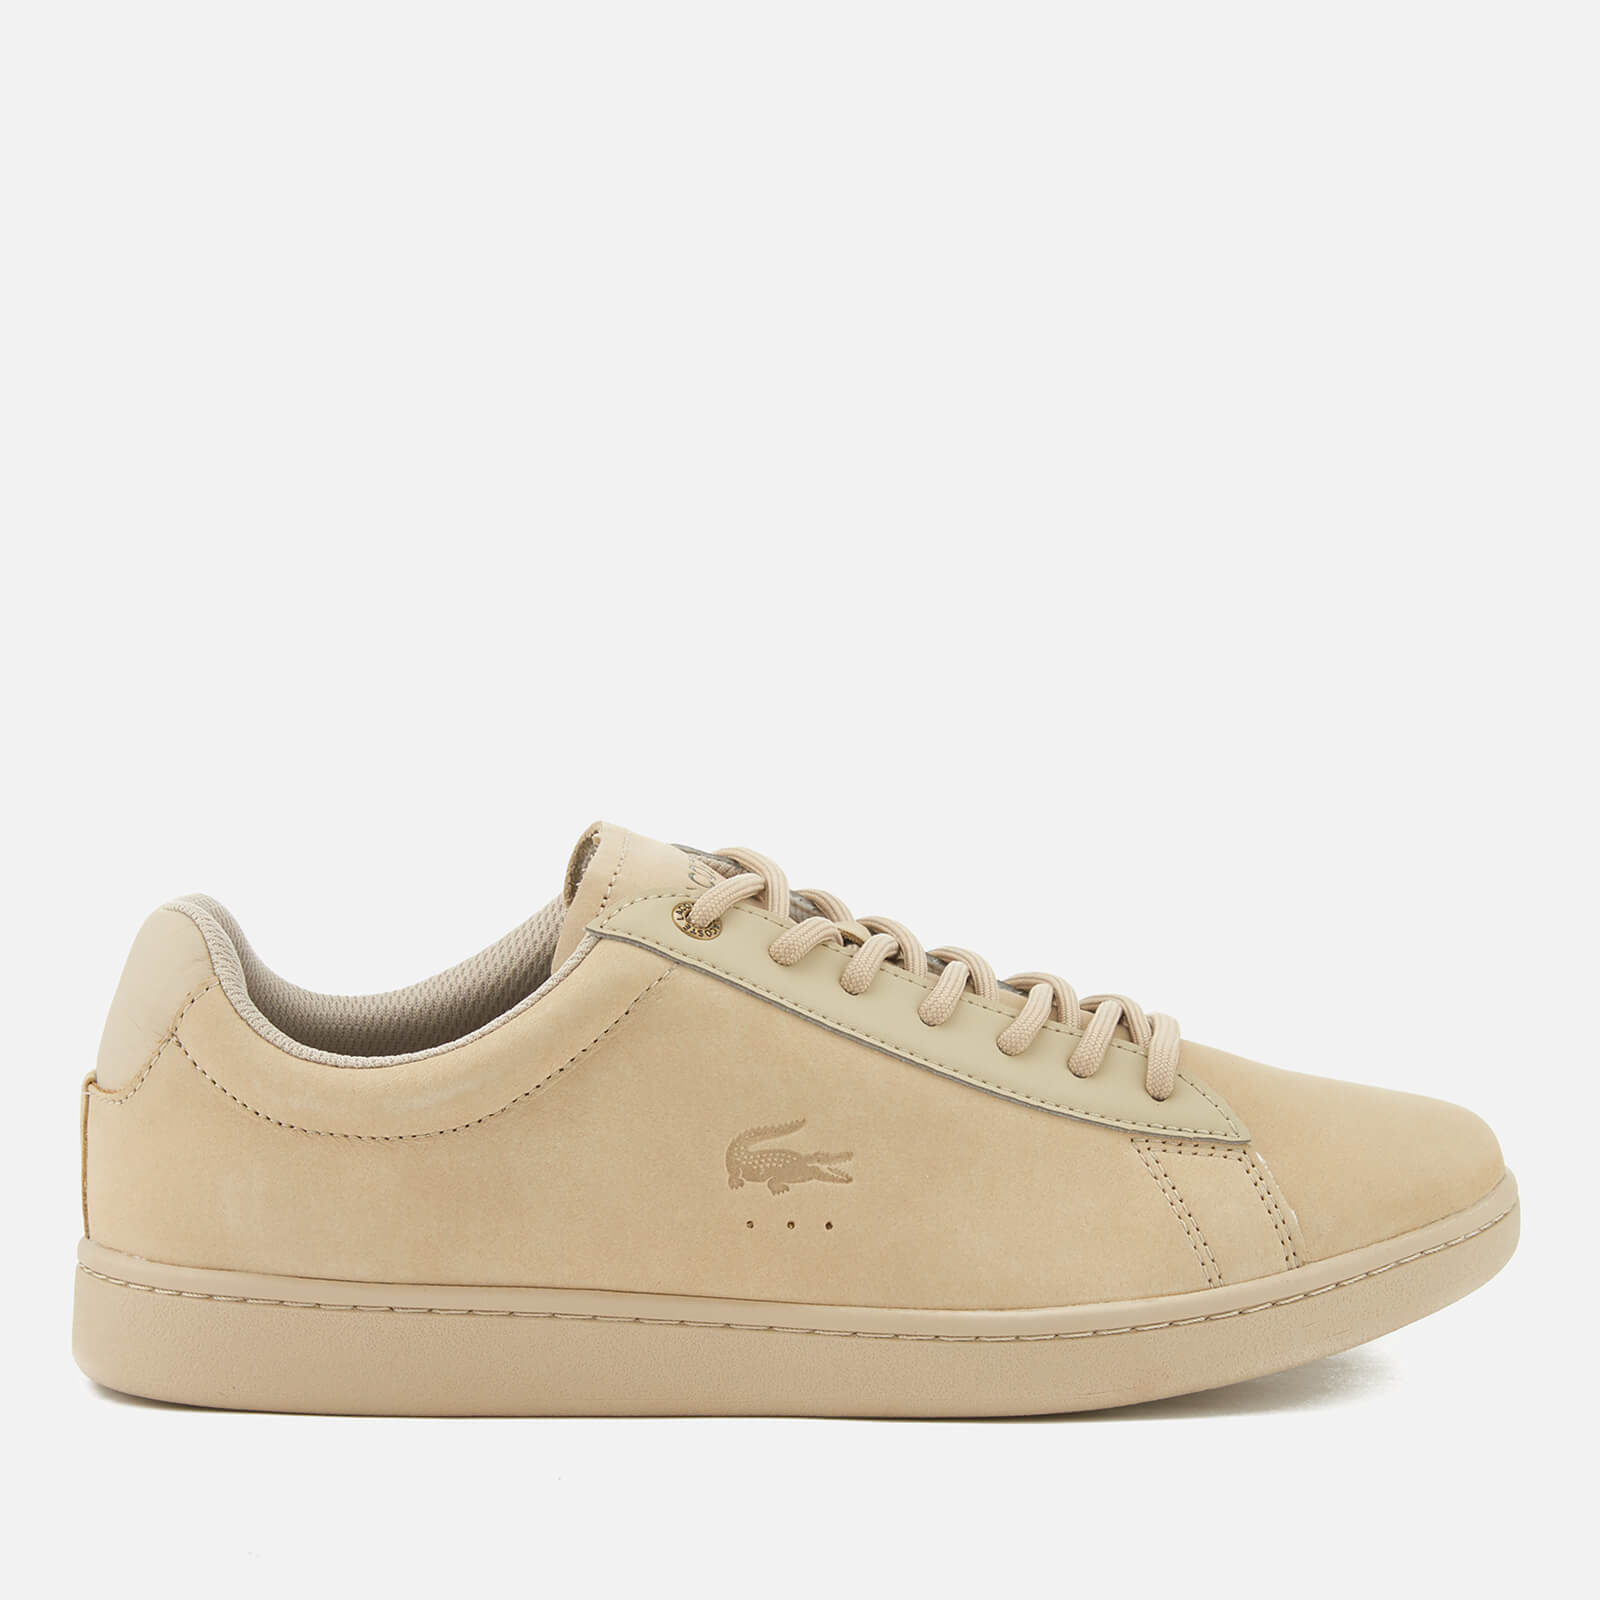 660cdbb4e Lacoste Men s Carnaby Evo 118 1 Spm Nubuck Cupsole Trainers - Light Tan -  Free UK Delivery over £50